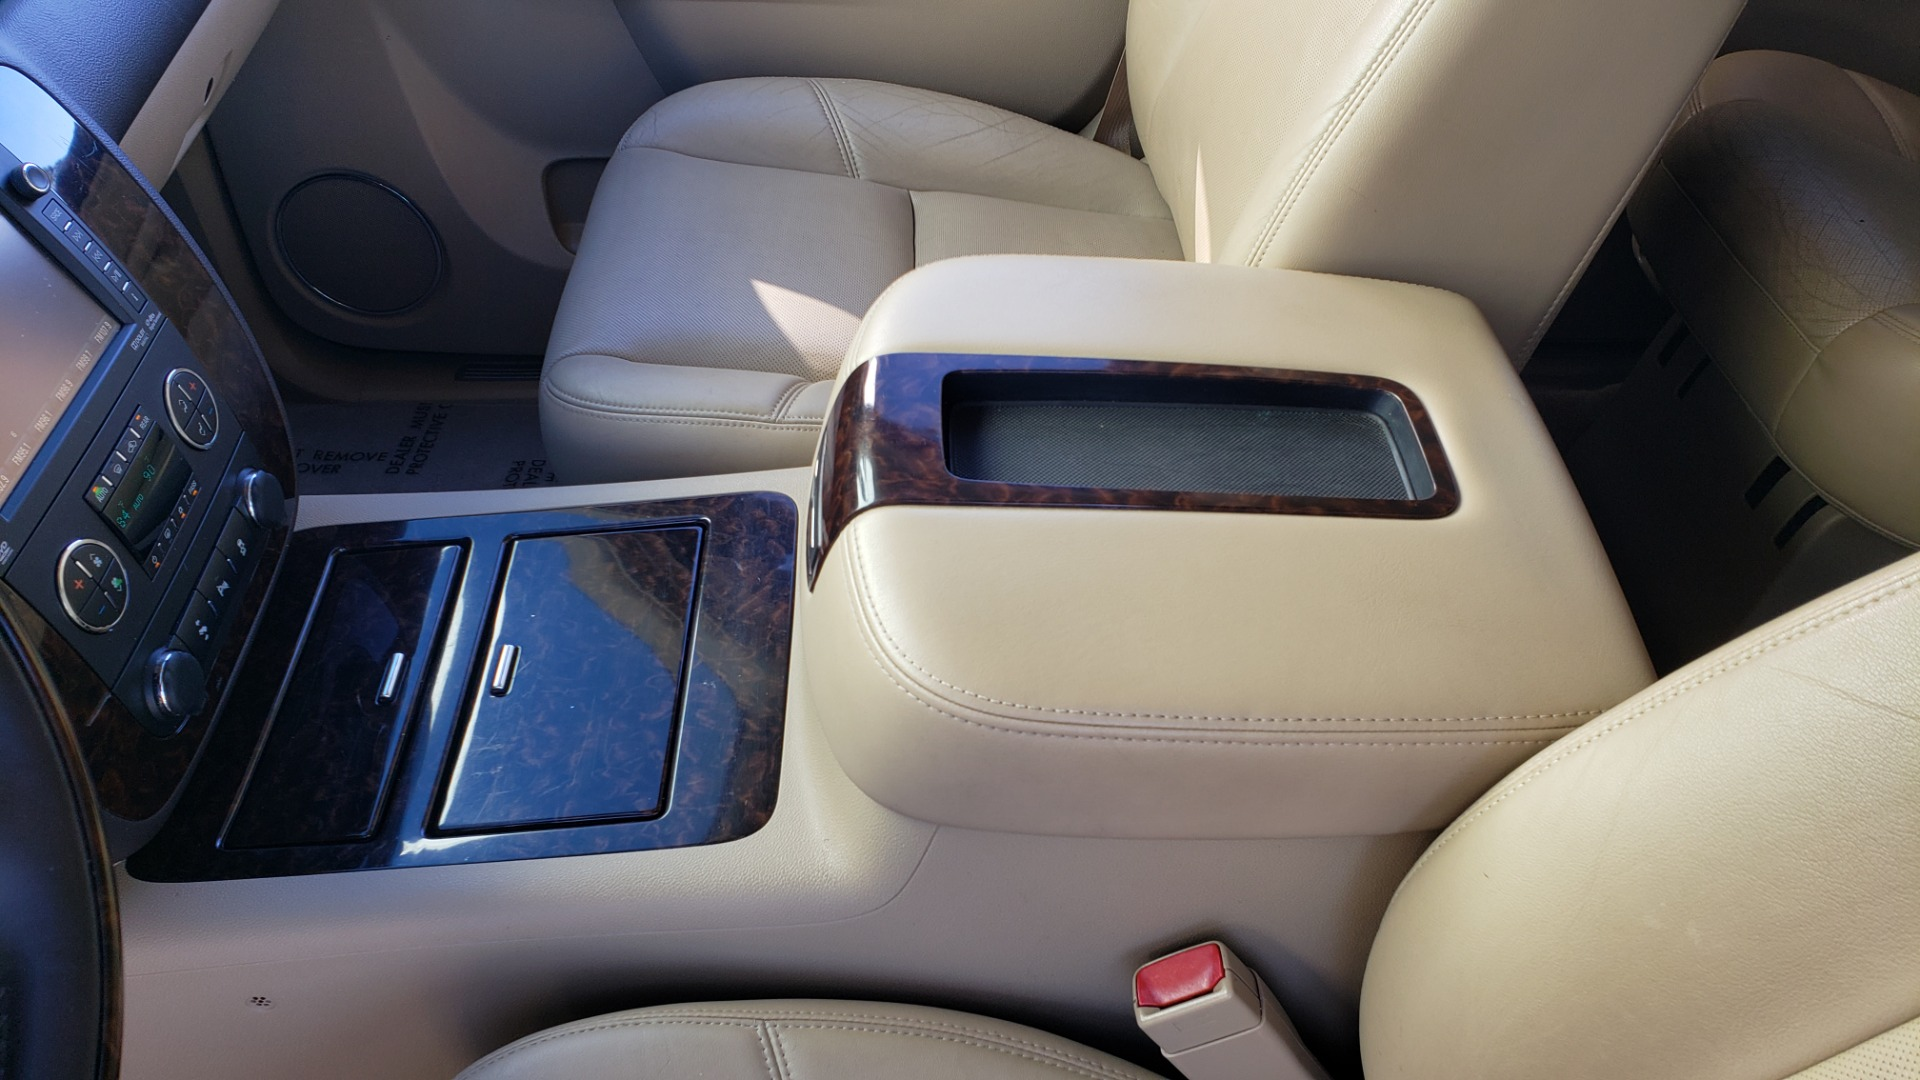 Used 2013 GMC YUKON XL DENALI / AWD / NAV / SUNROOF / 3-ROW / ENTERTAINMENT for sale Sold at Formula Imports in Charlotte NC 28227 55